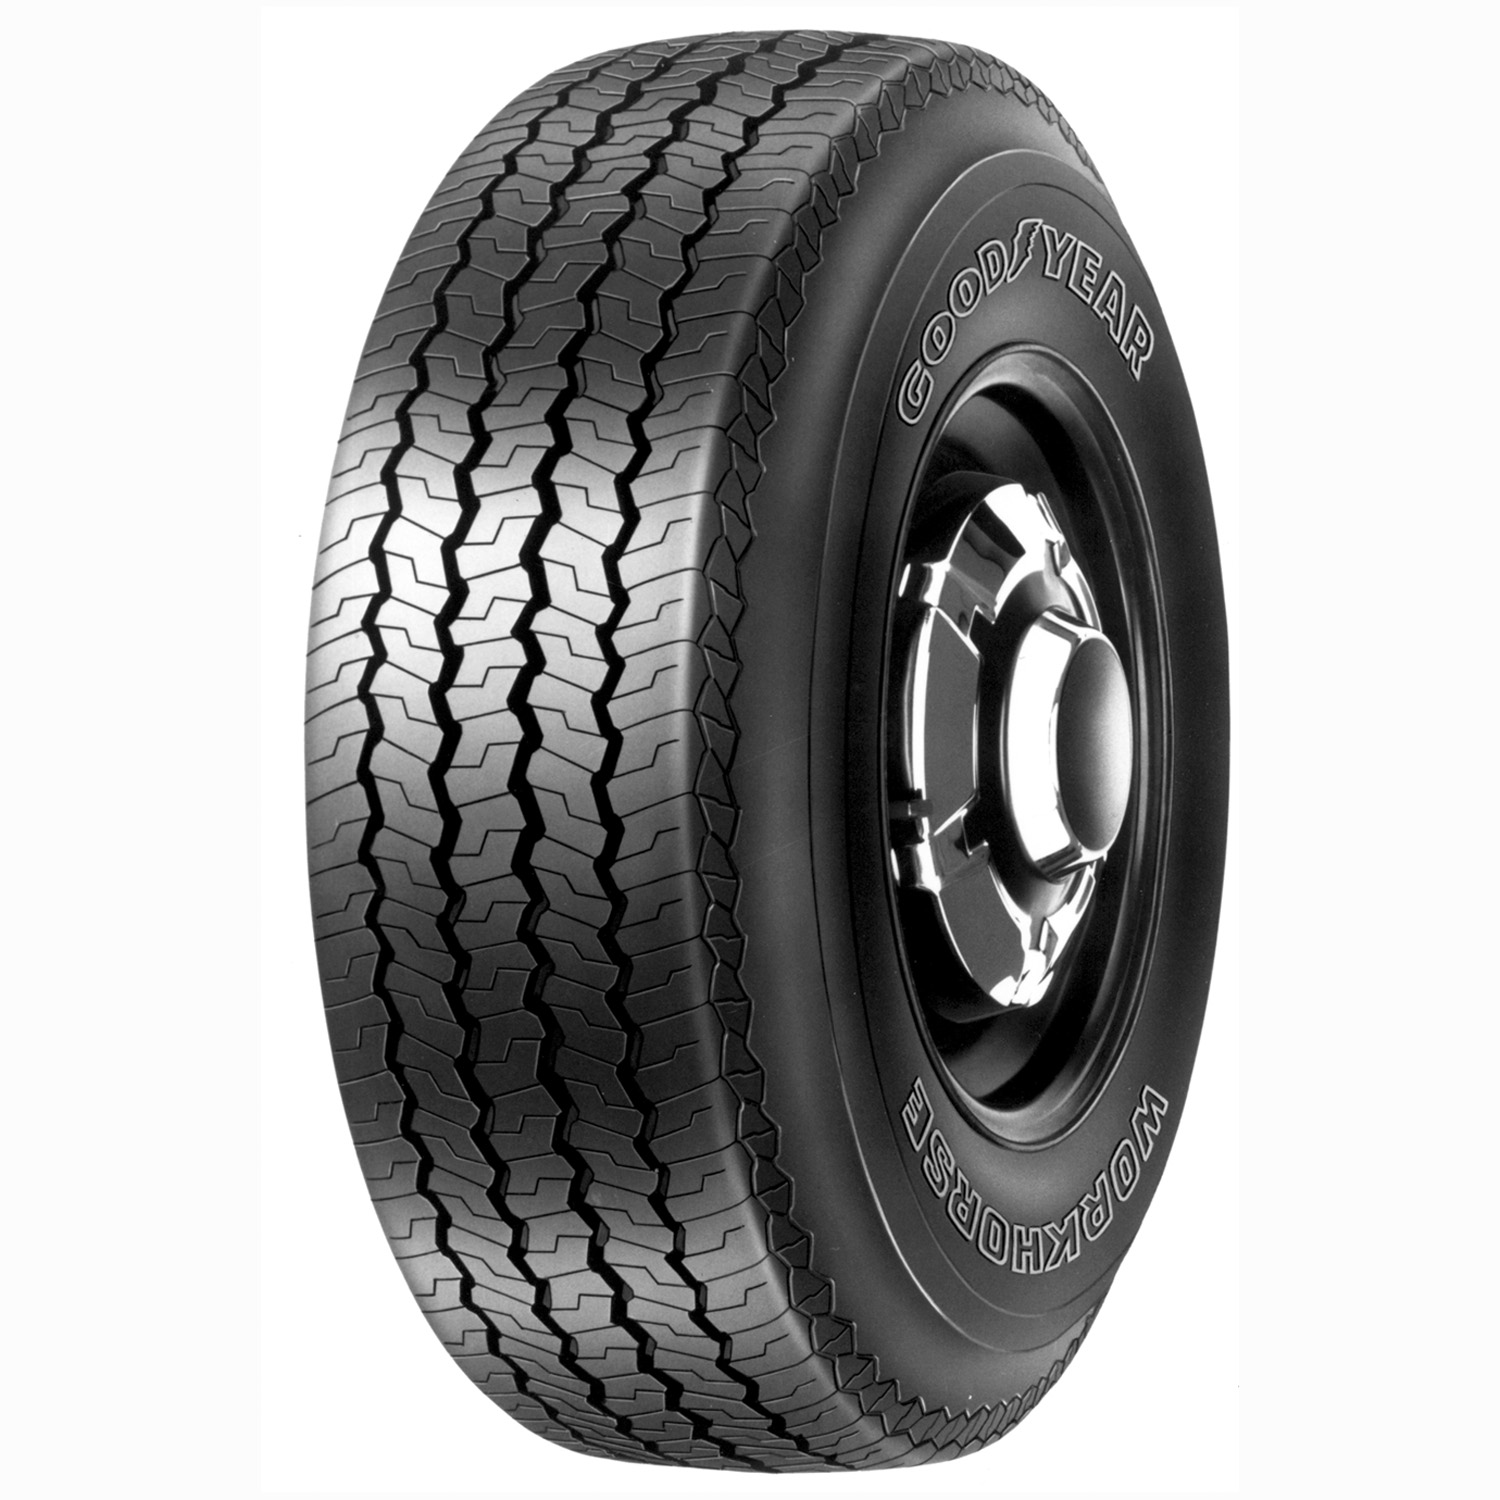 Goodyear  Workhorse Rib - 7.50Tire -16LT LRE BSW